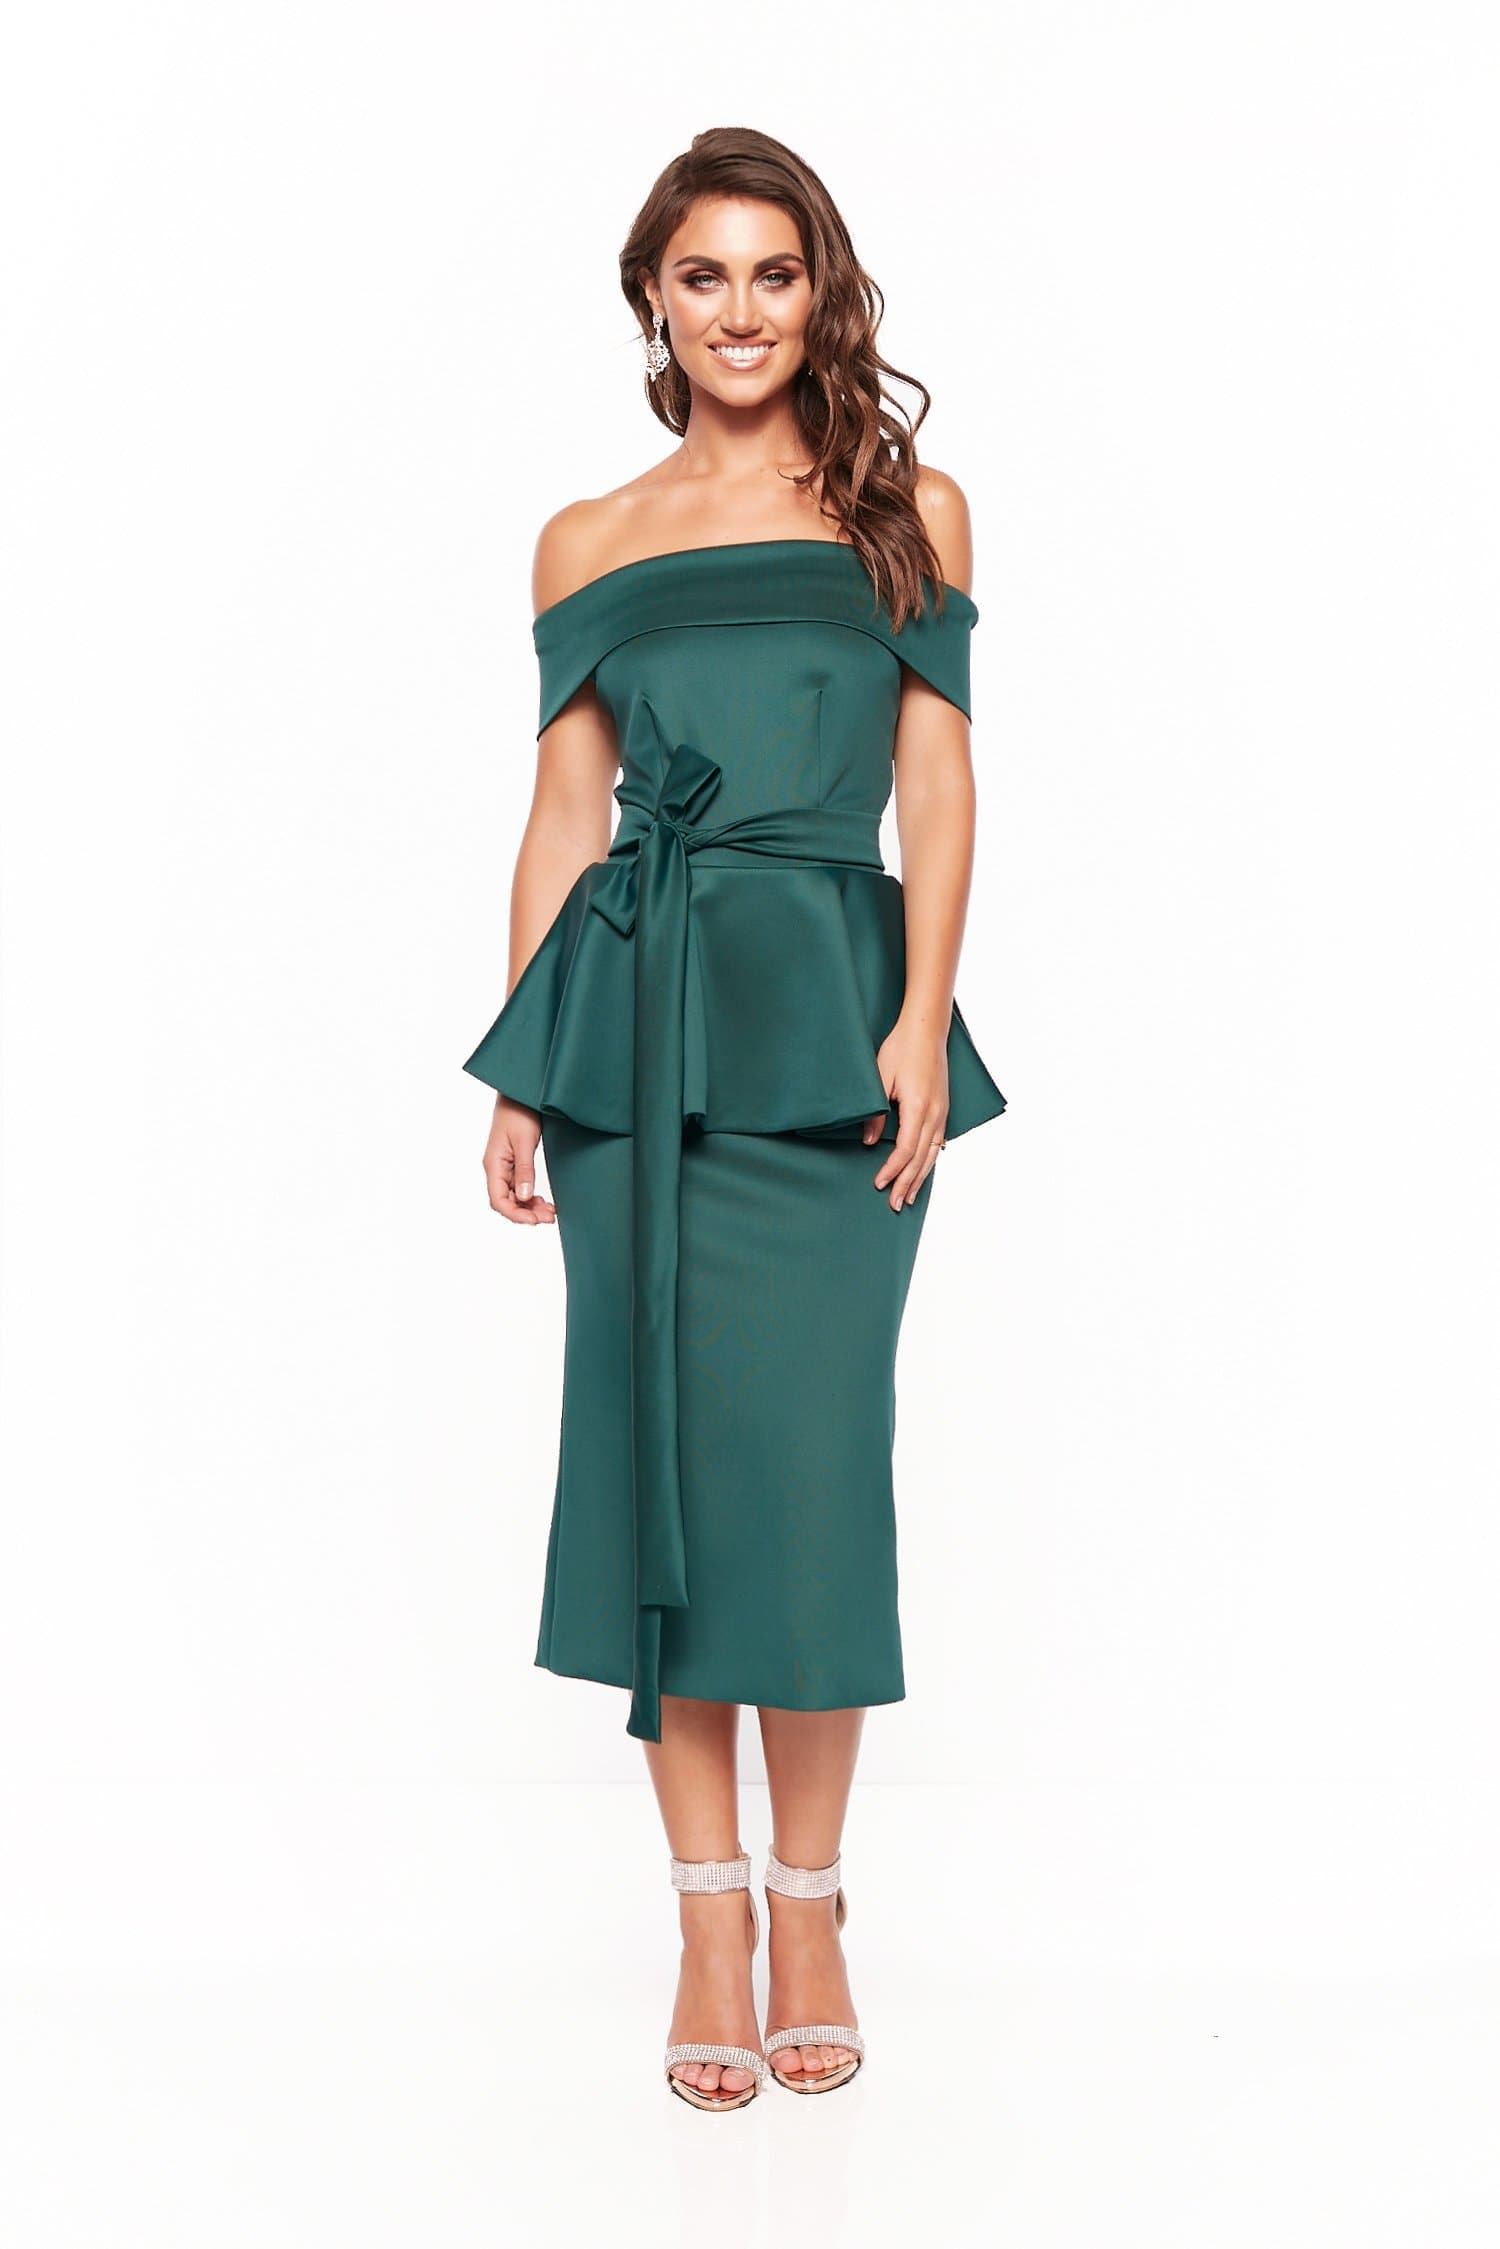 A&N Camila Cocktail Off-Shoulder Midi Dress - Emerald